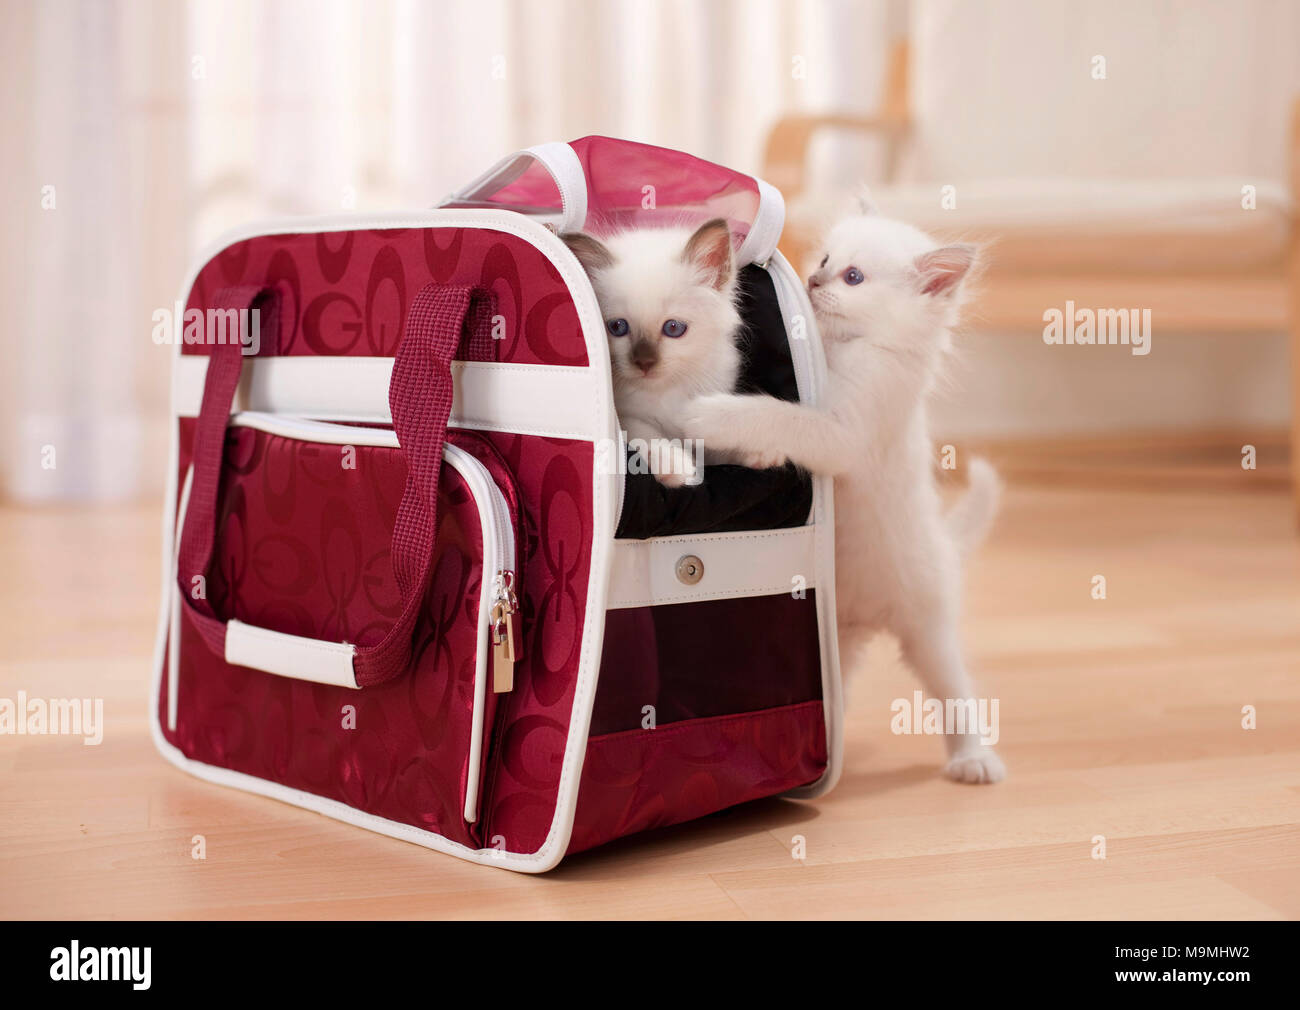 Sacred cat of Burma. Kitten (6 weeks old) in and next to a pet carrier. Germany - Stock Image